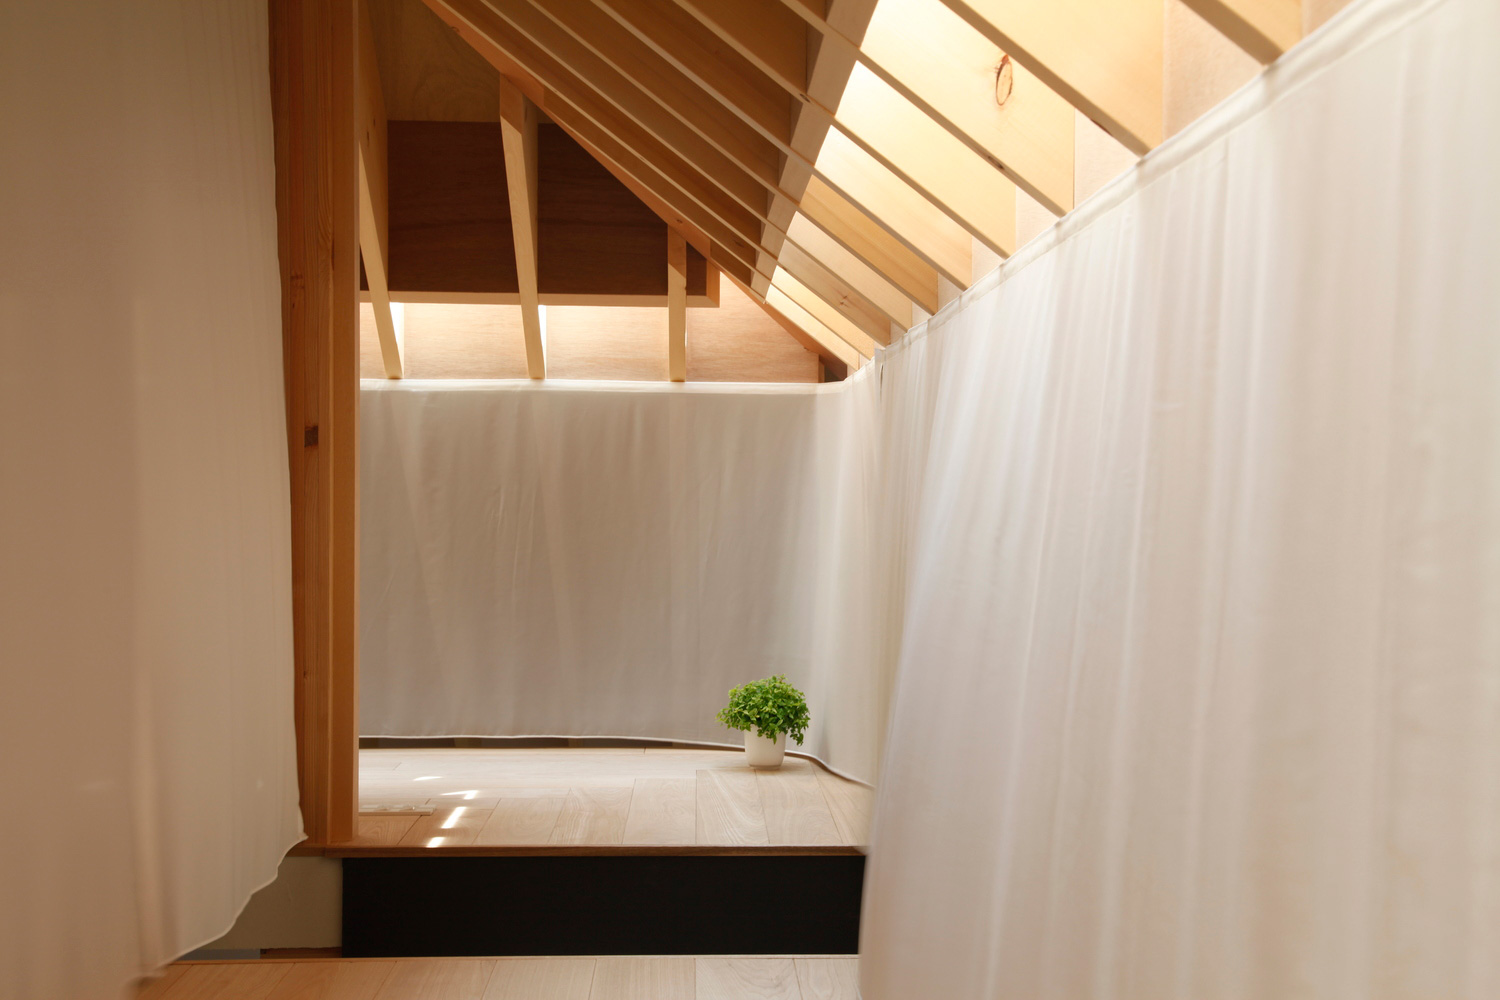 Wengawa House, Japan. By Katsutoshi Sasaki and Associates, 2015